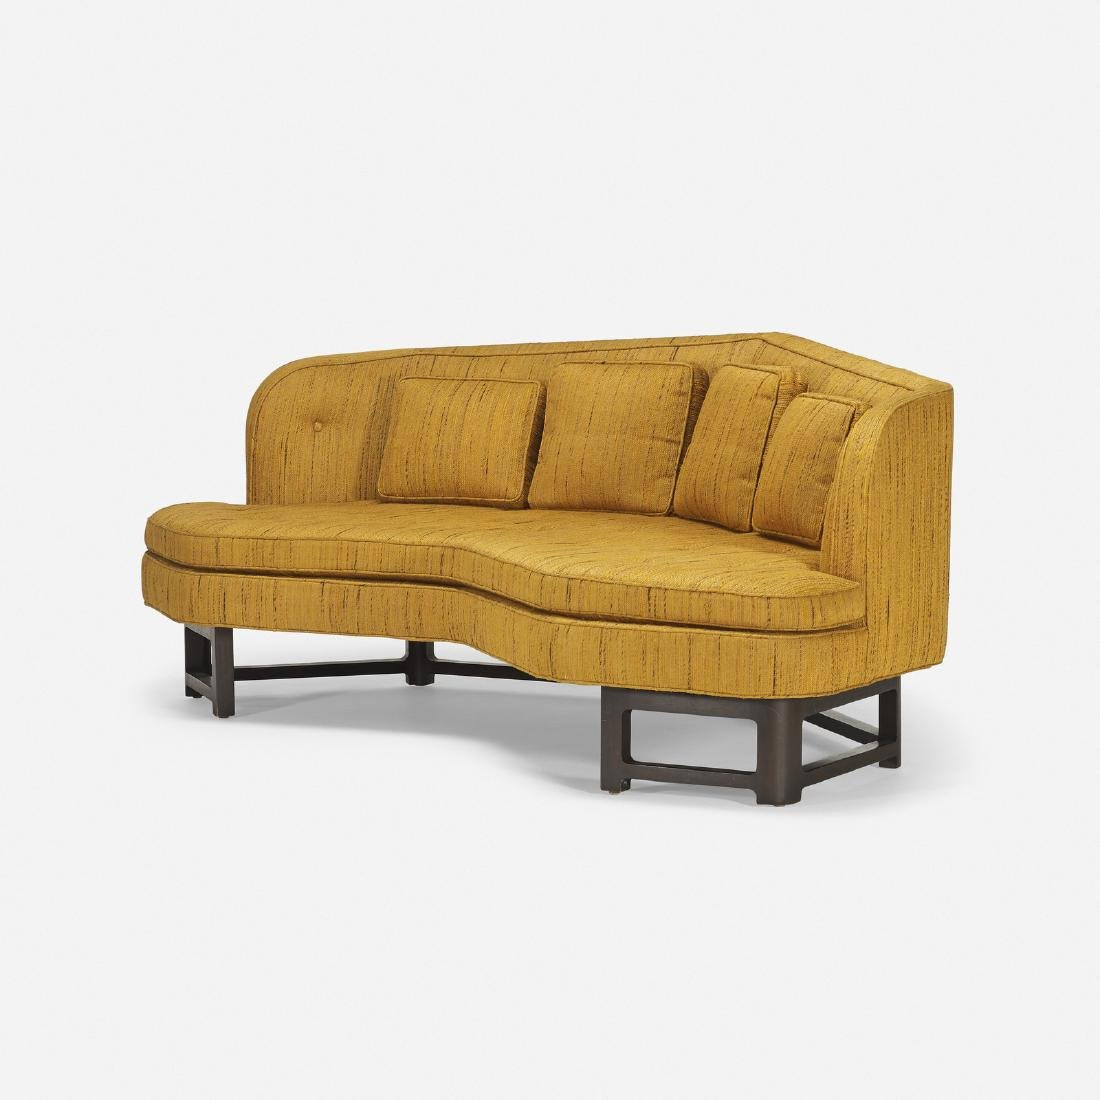 Edward Wormley, sofa, model 6329A